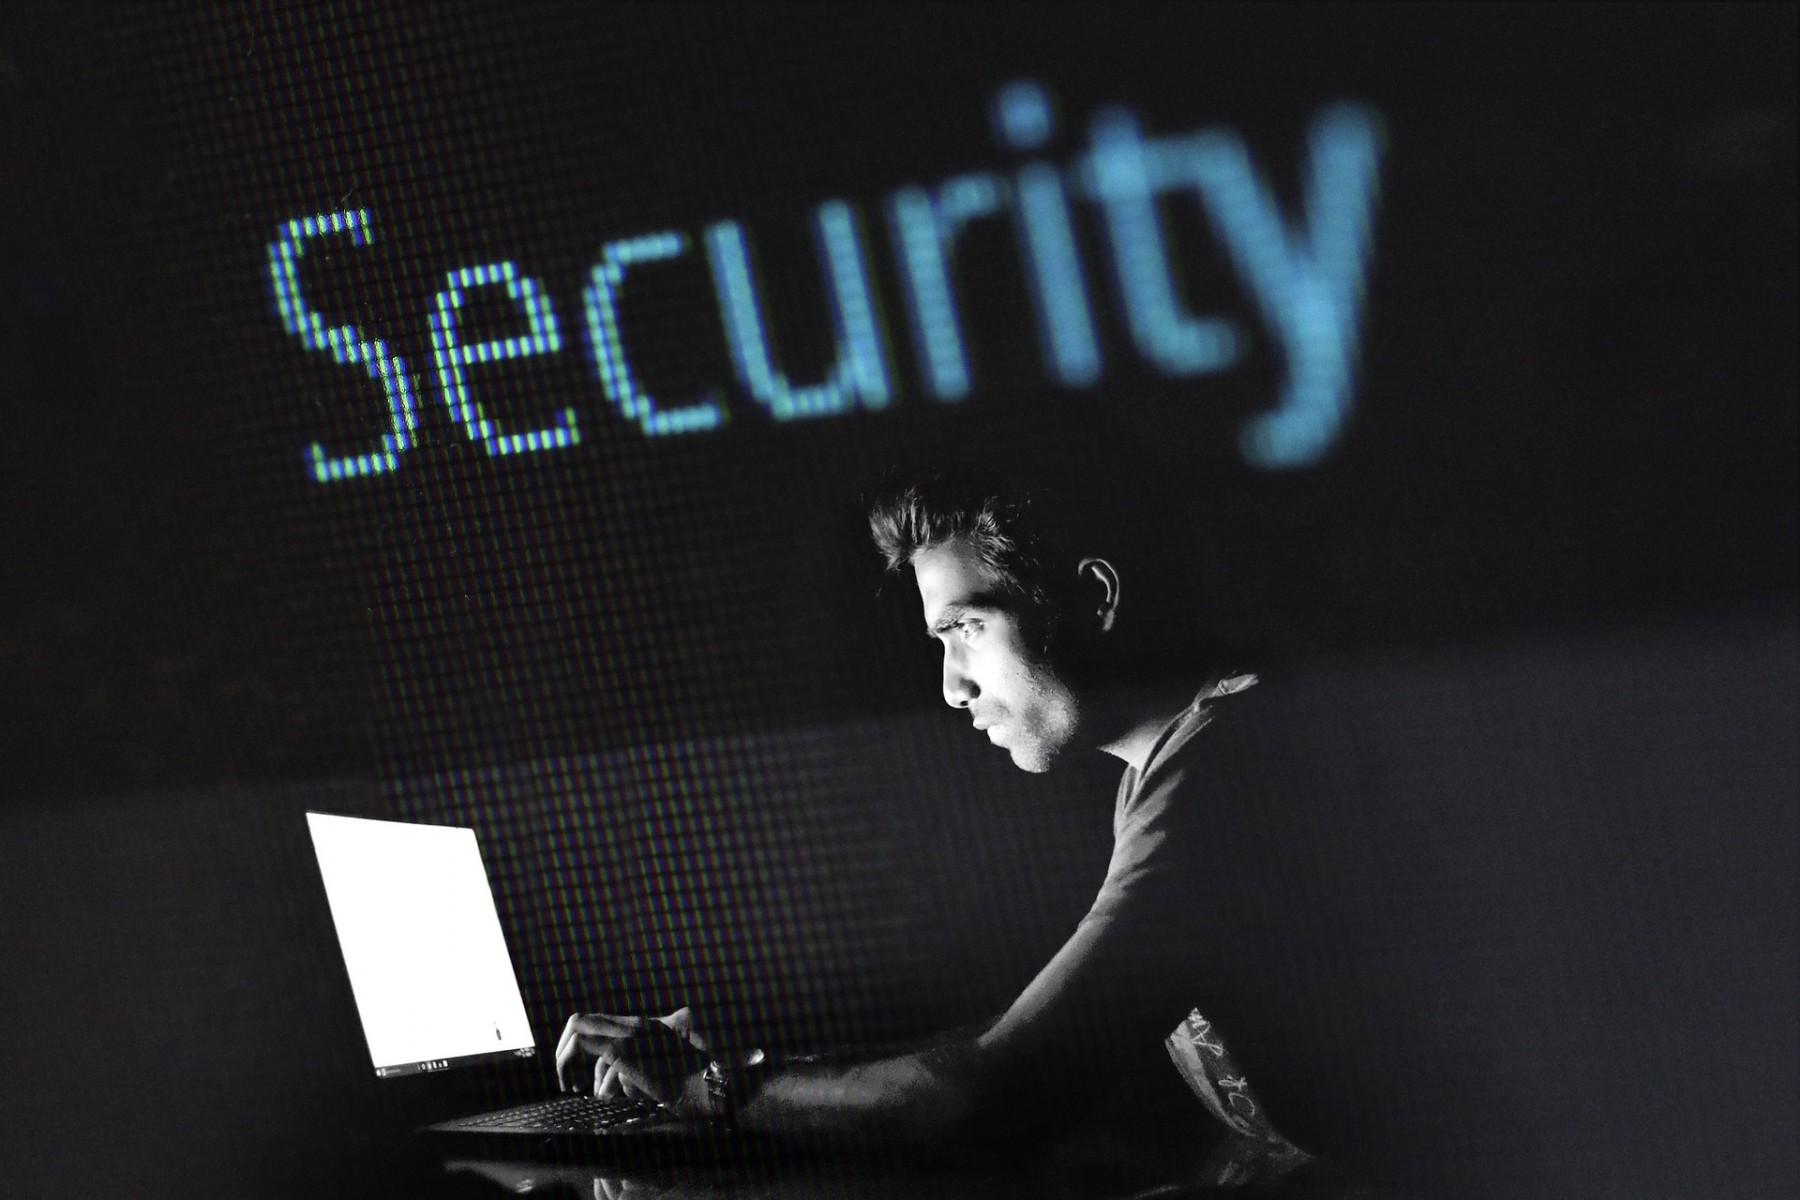 Hacking and cybersecurity stock image